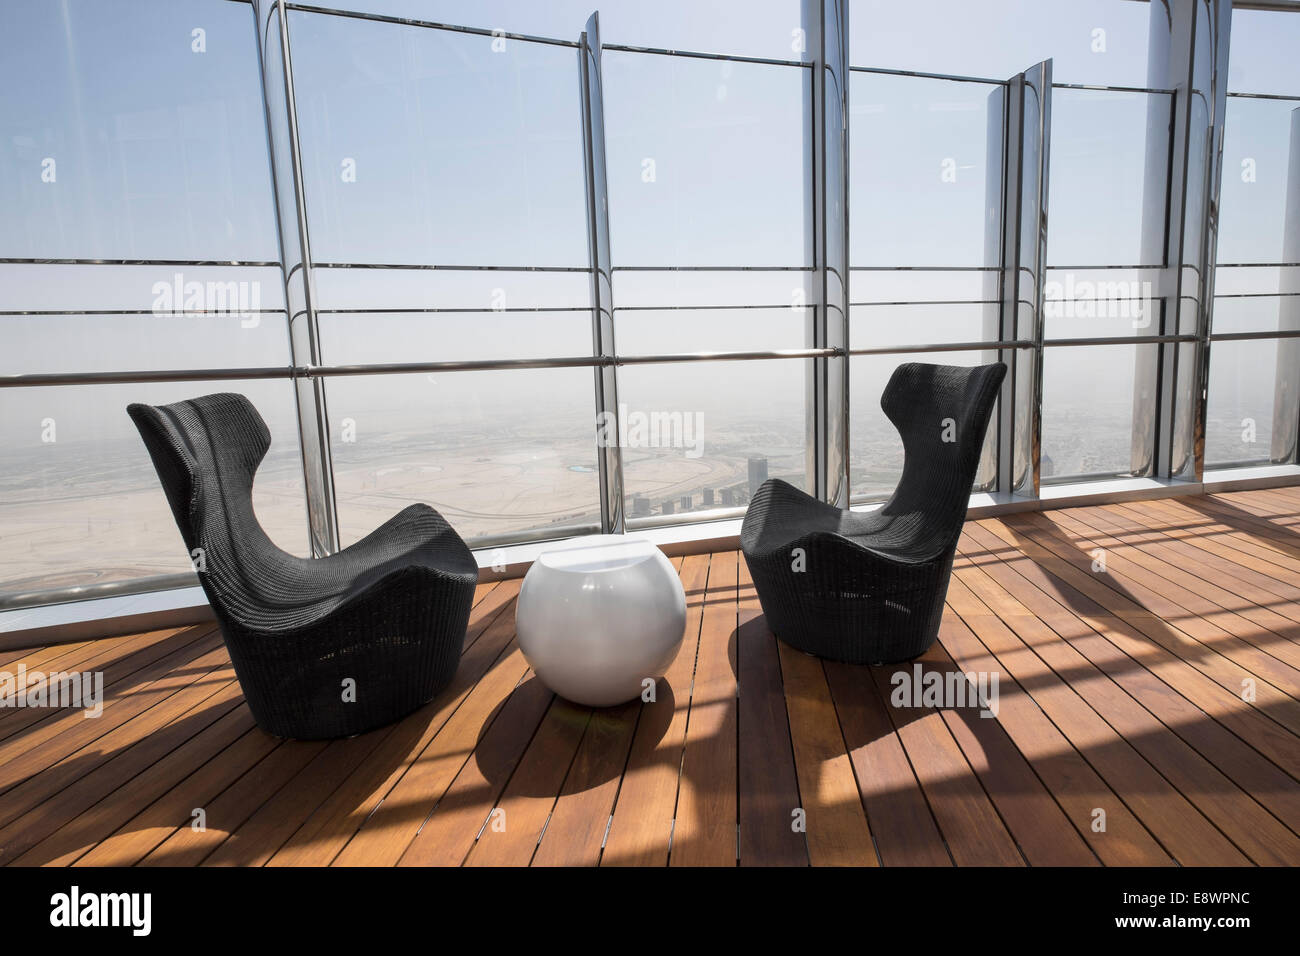 Dubai, United Arab Emirates. 15th October, 2014;  The world's highest public outdoor observation deck opened - Stock Image